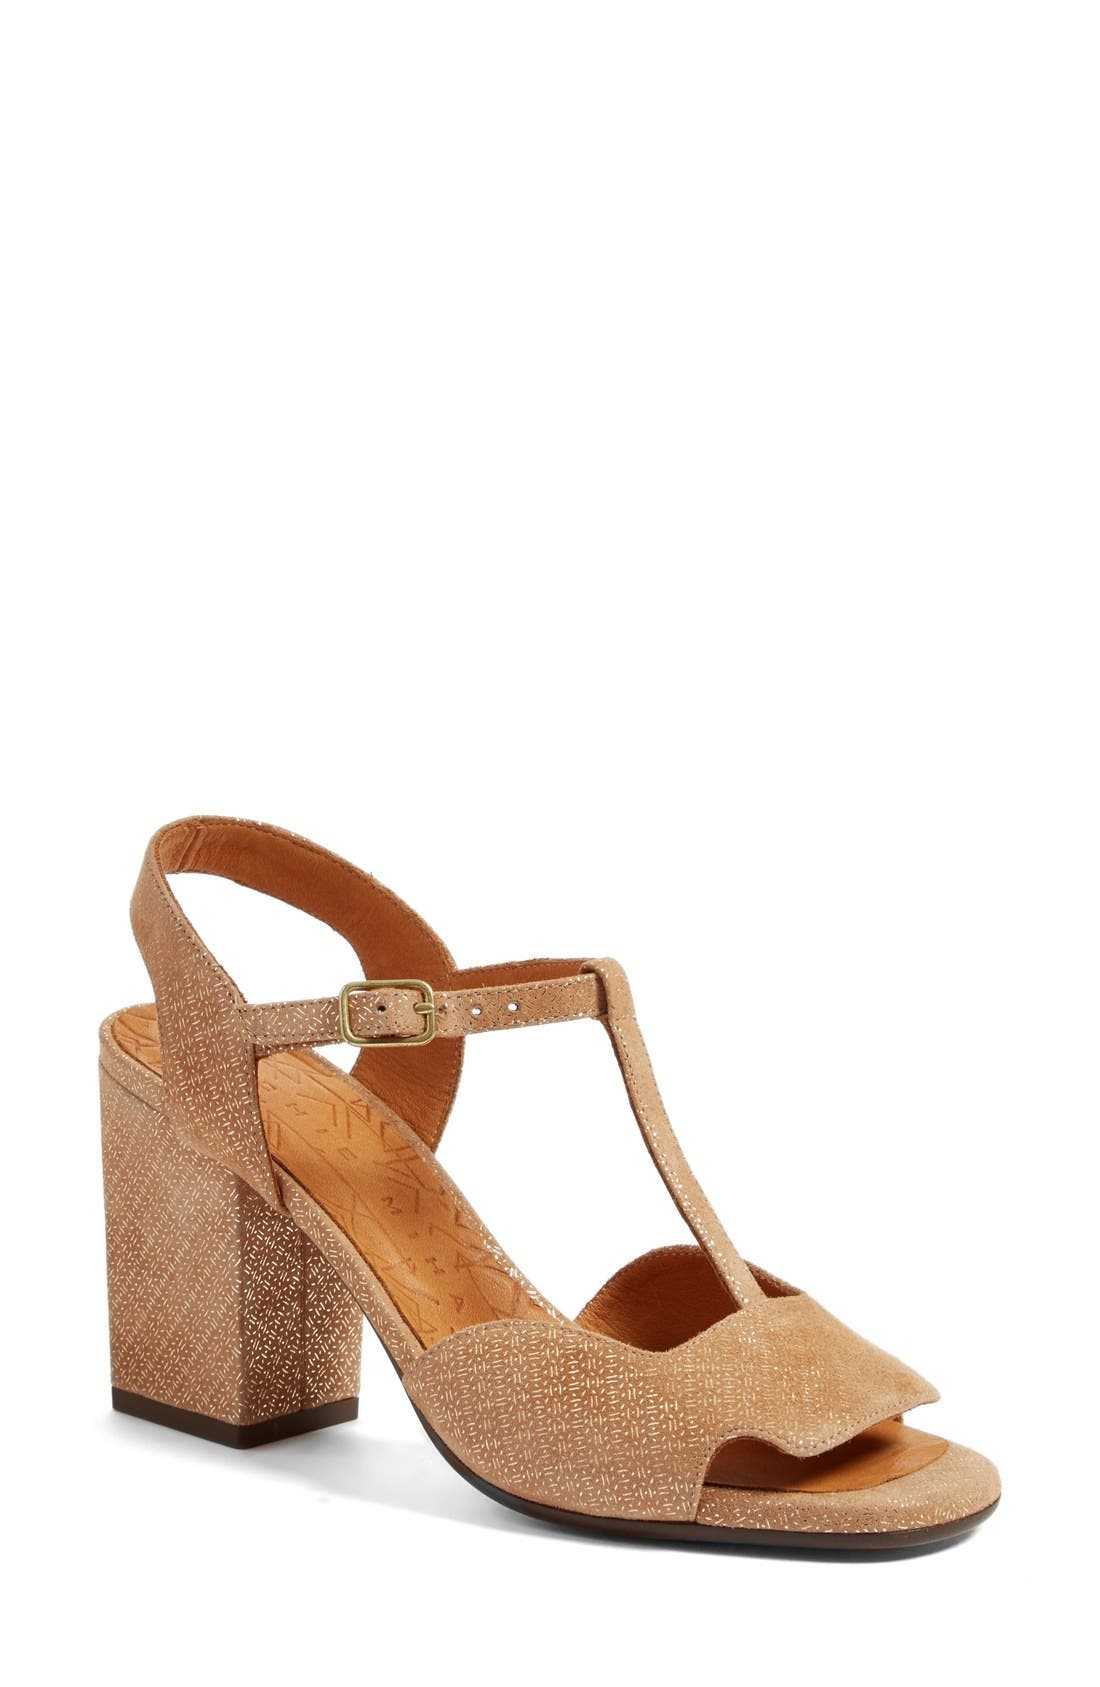 Birthe T-Strap Sandal,                             Main thumbnail 1, color,                             250